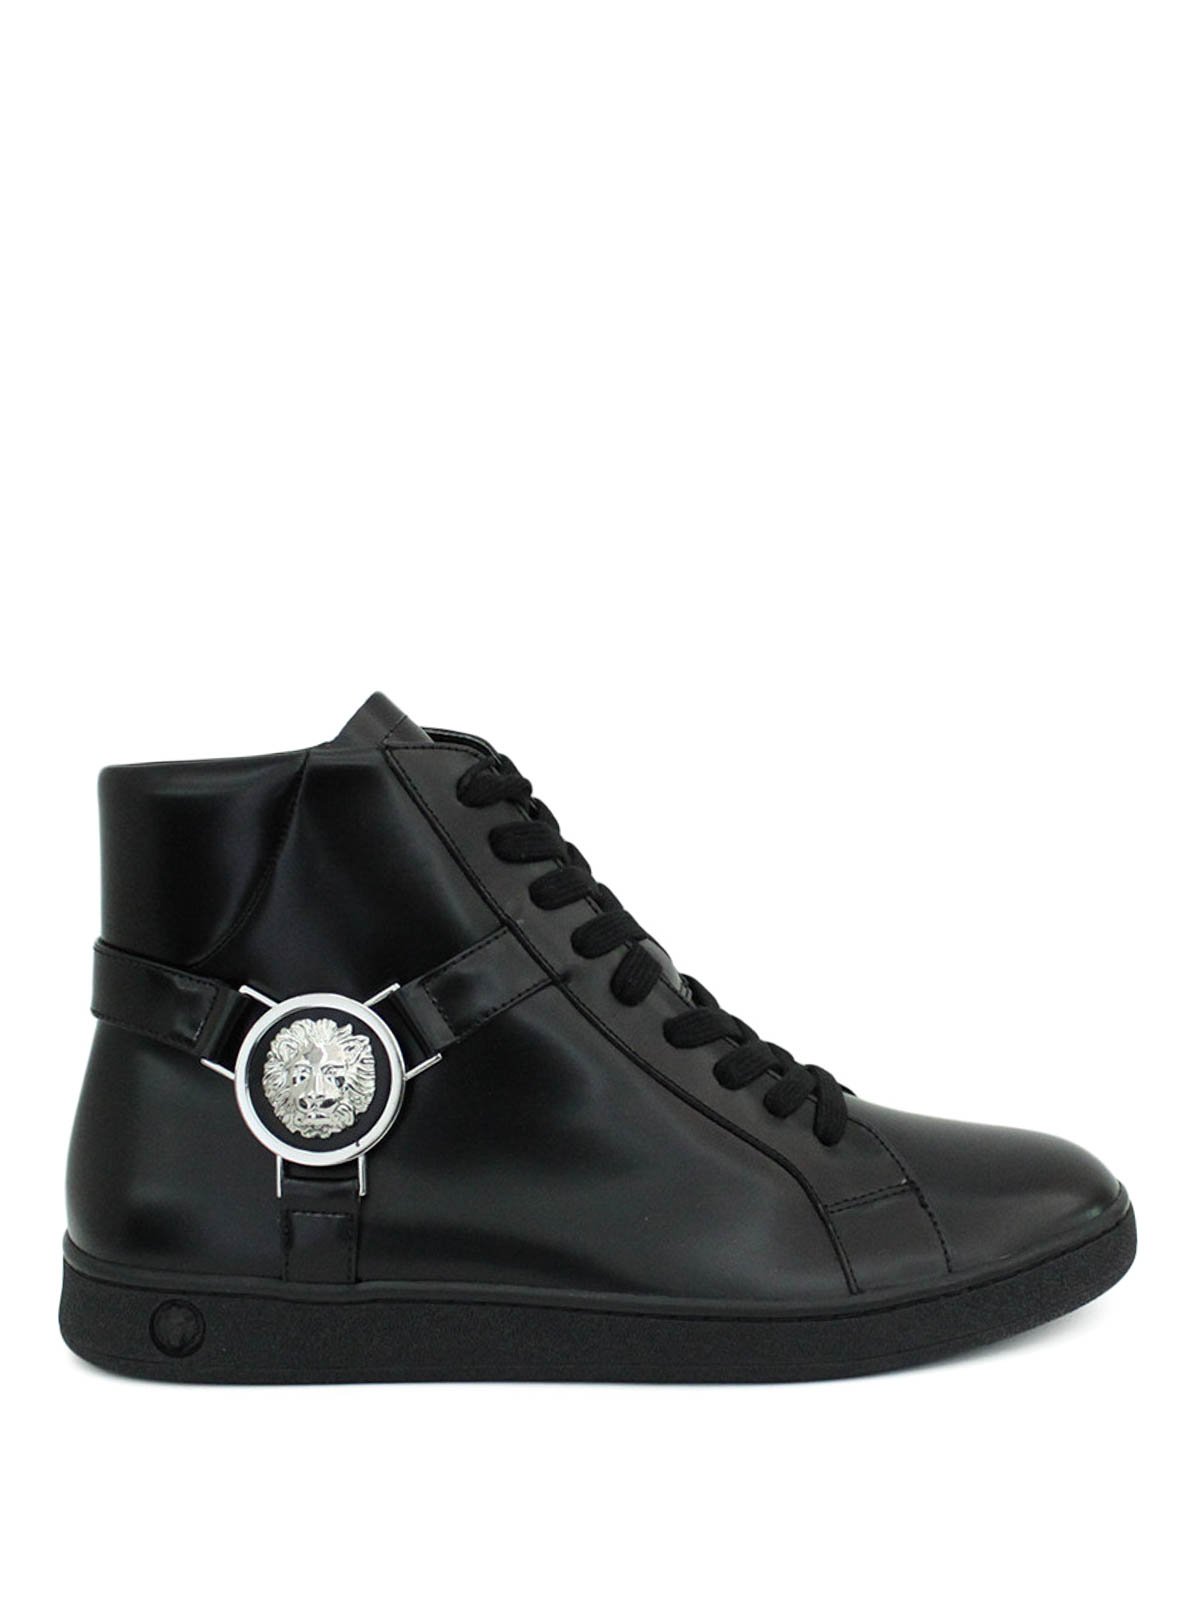 Lion Head high top leather sneakers by Versus Versace ...